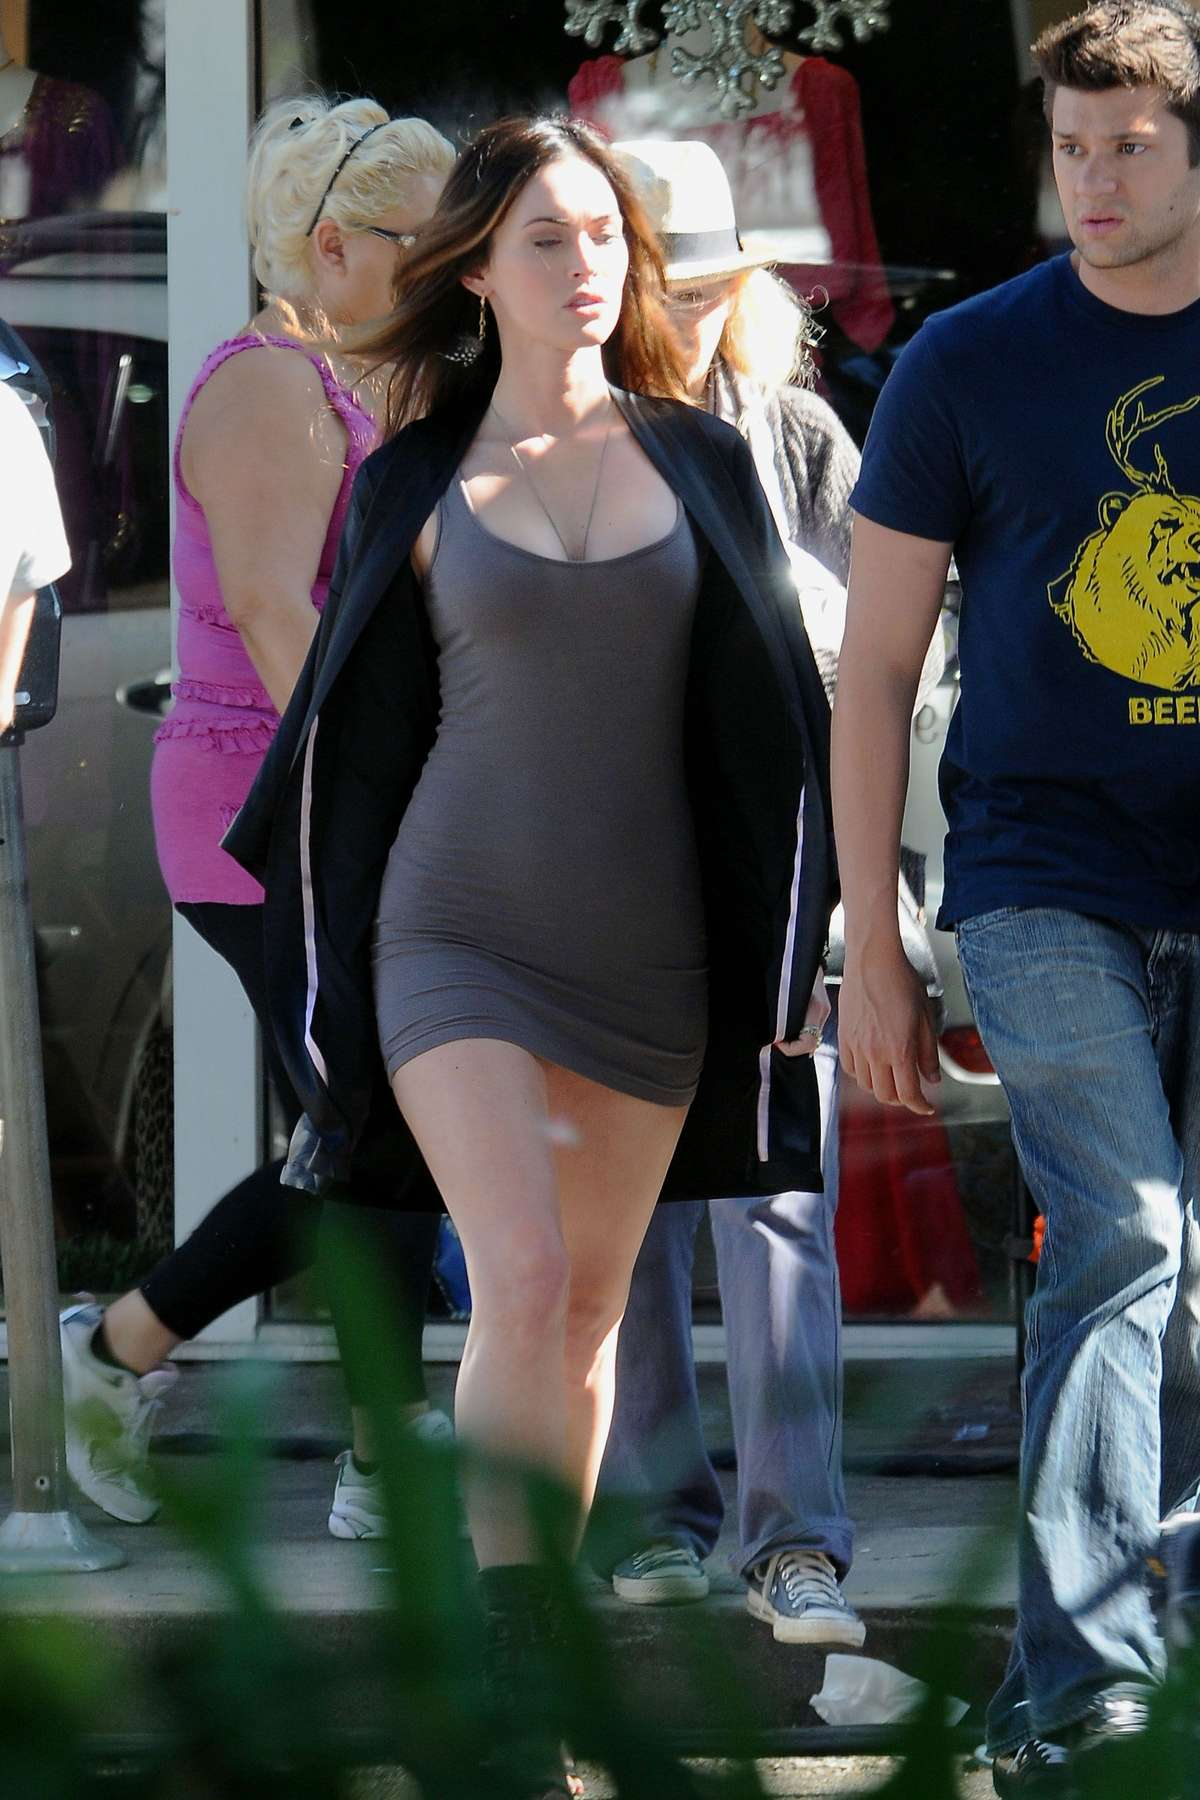 Megan Fox In Tight Short Mini Dress on set of THIS IS